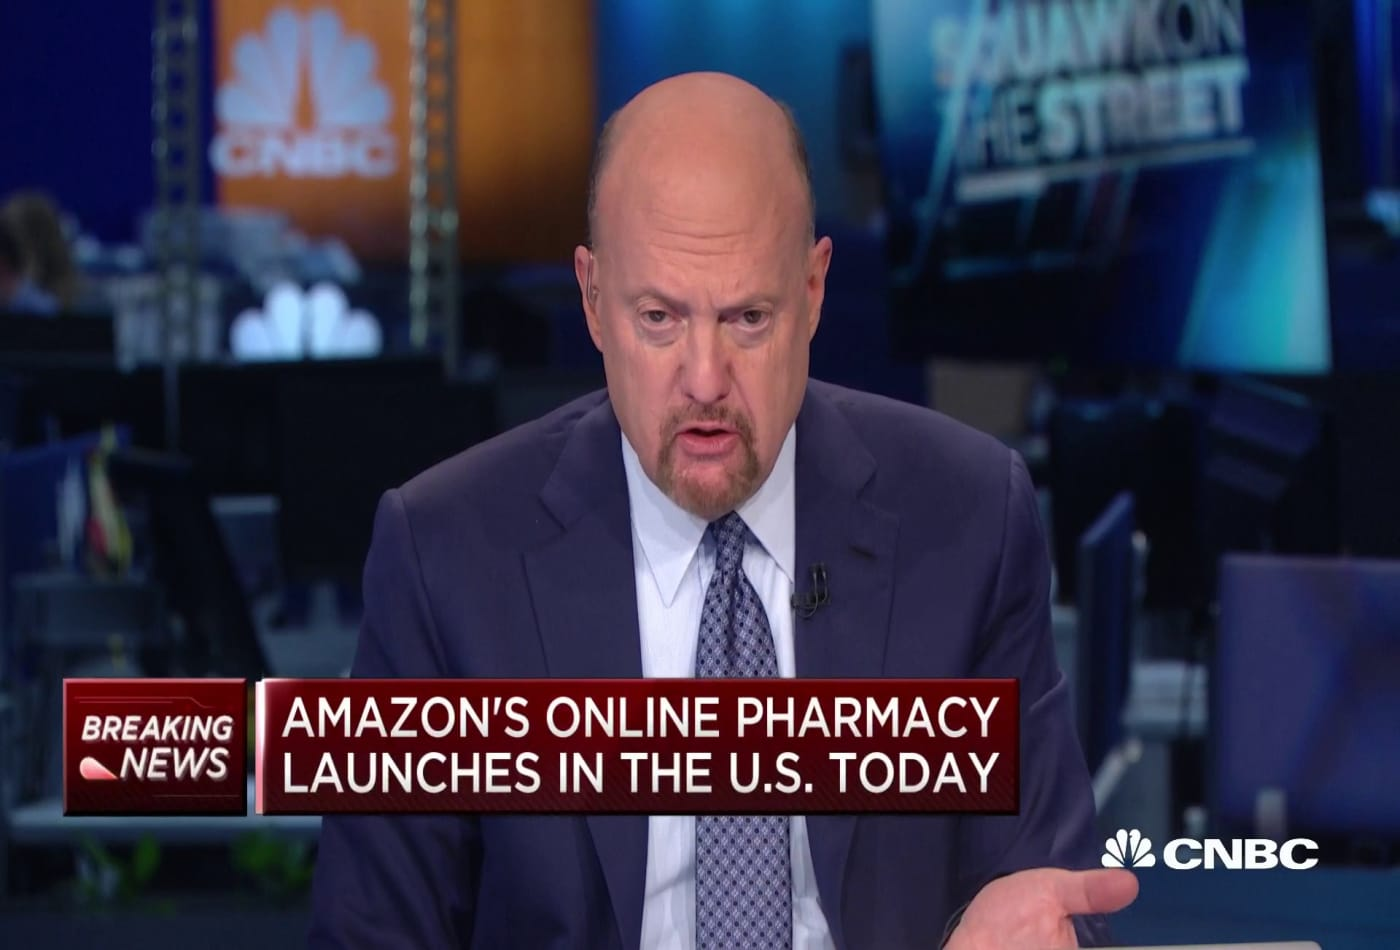 Jim Cramer on how Amazon Pharmacy will shake up the industry